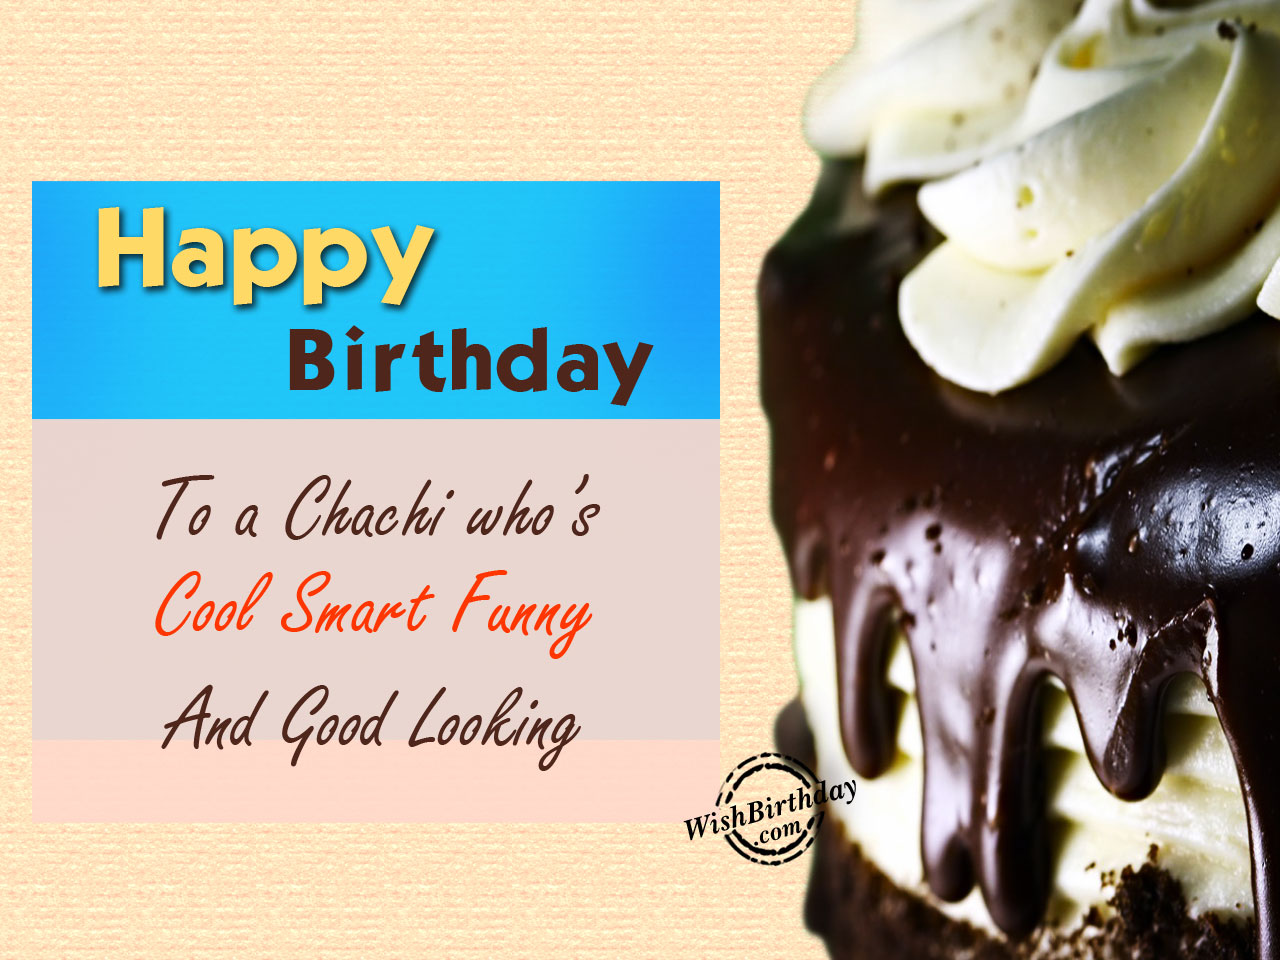 Happy Birthday Wishes Korean ~ Birthday wishes for chachi ji images pictures